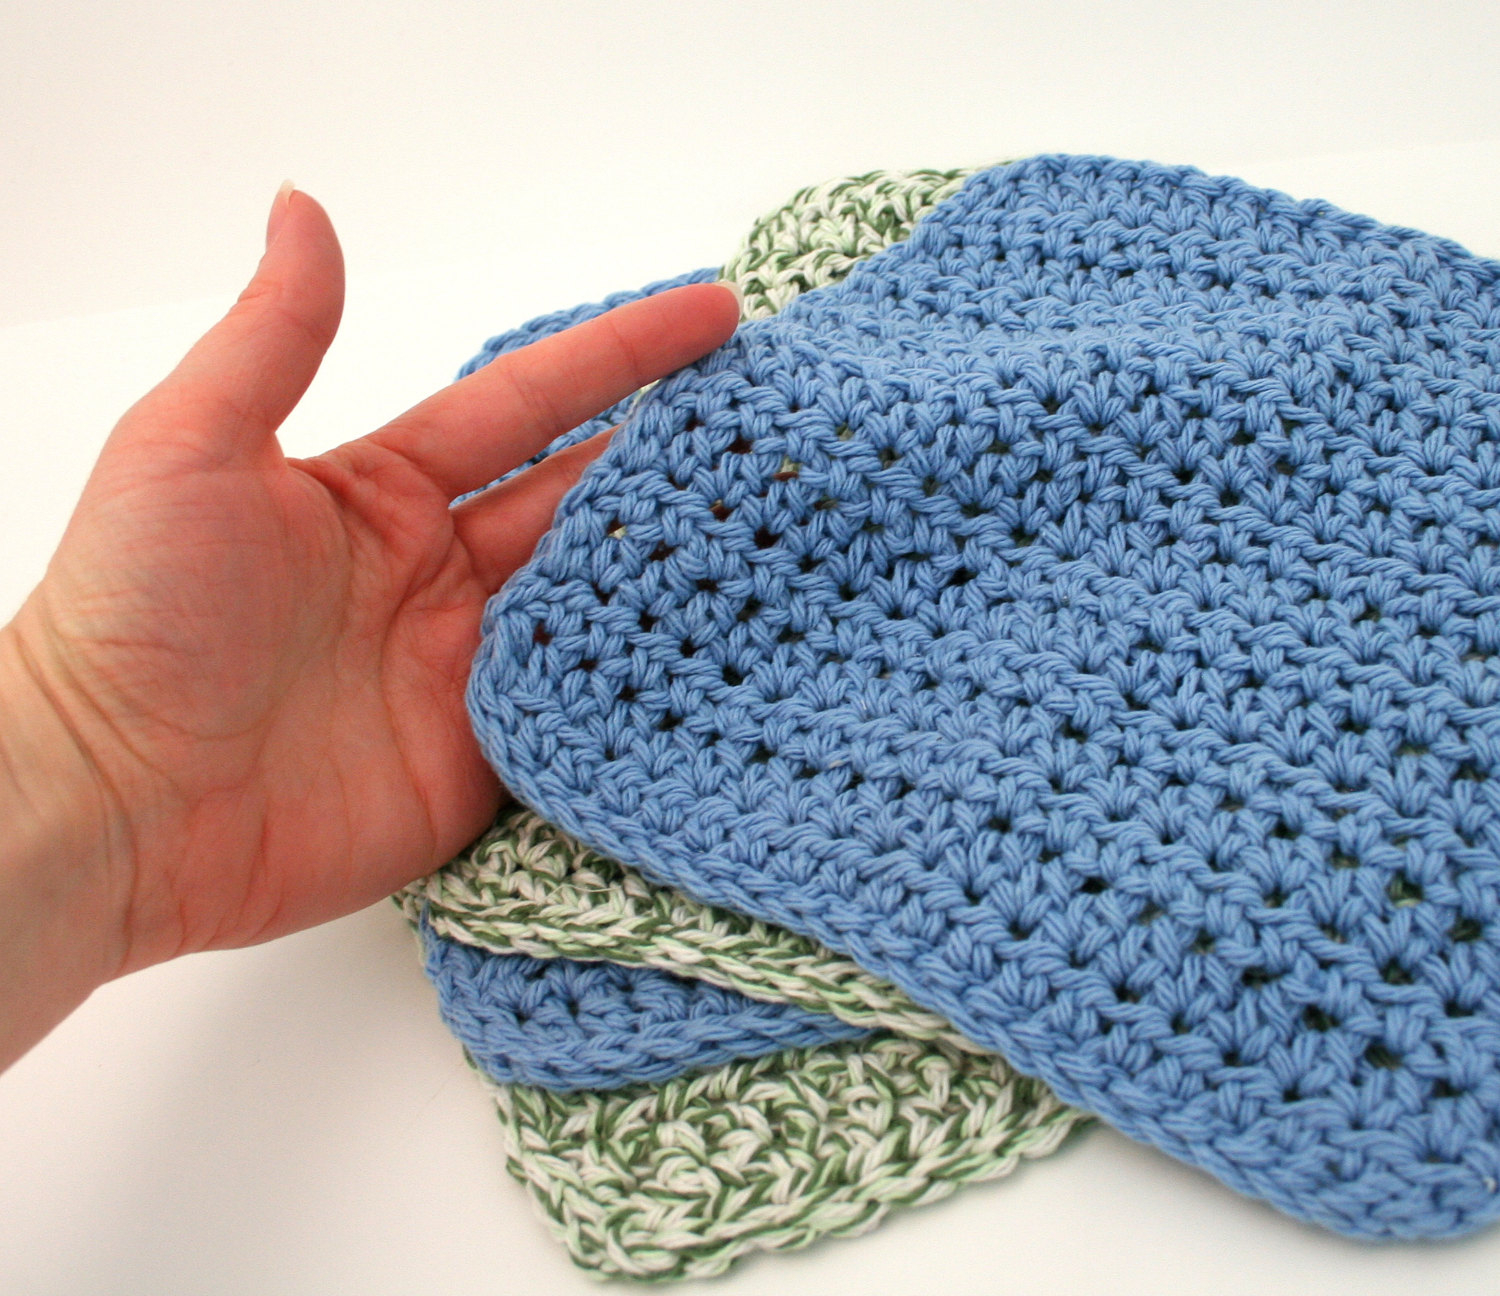 Quick and Simple Dish Cloth Crochet Pattern In Order That Easy Crochet Dishcloth Il Fullxfull 693180632 I2lh